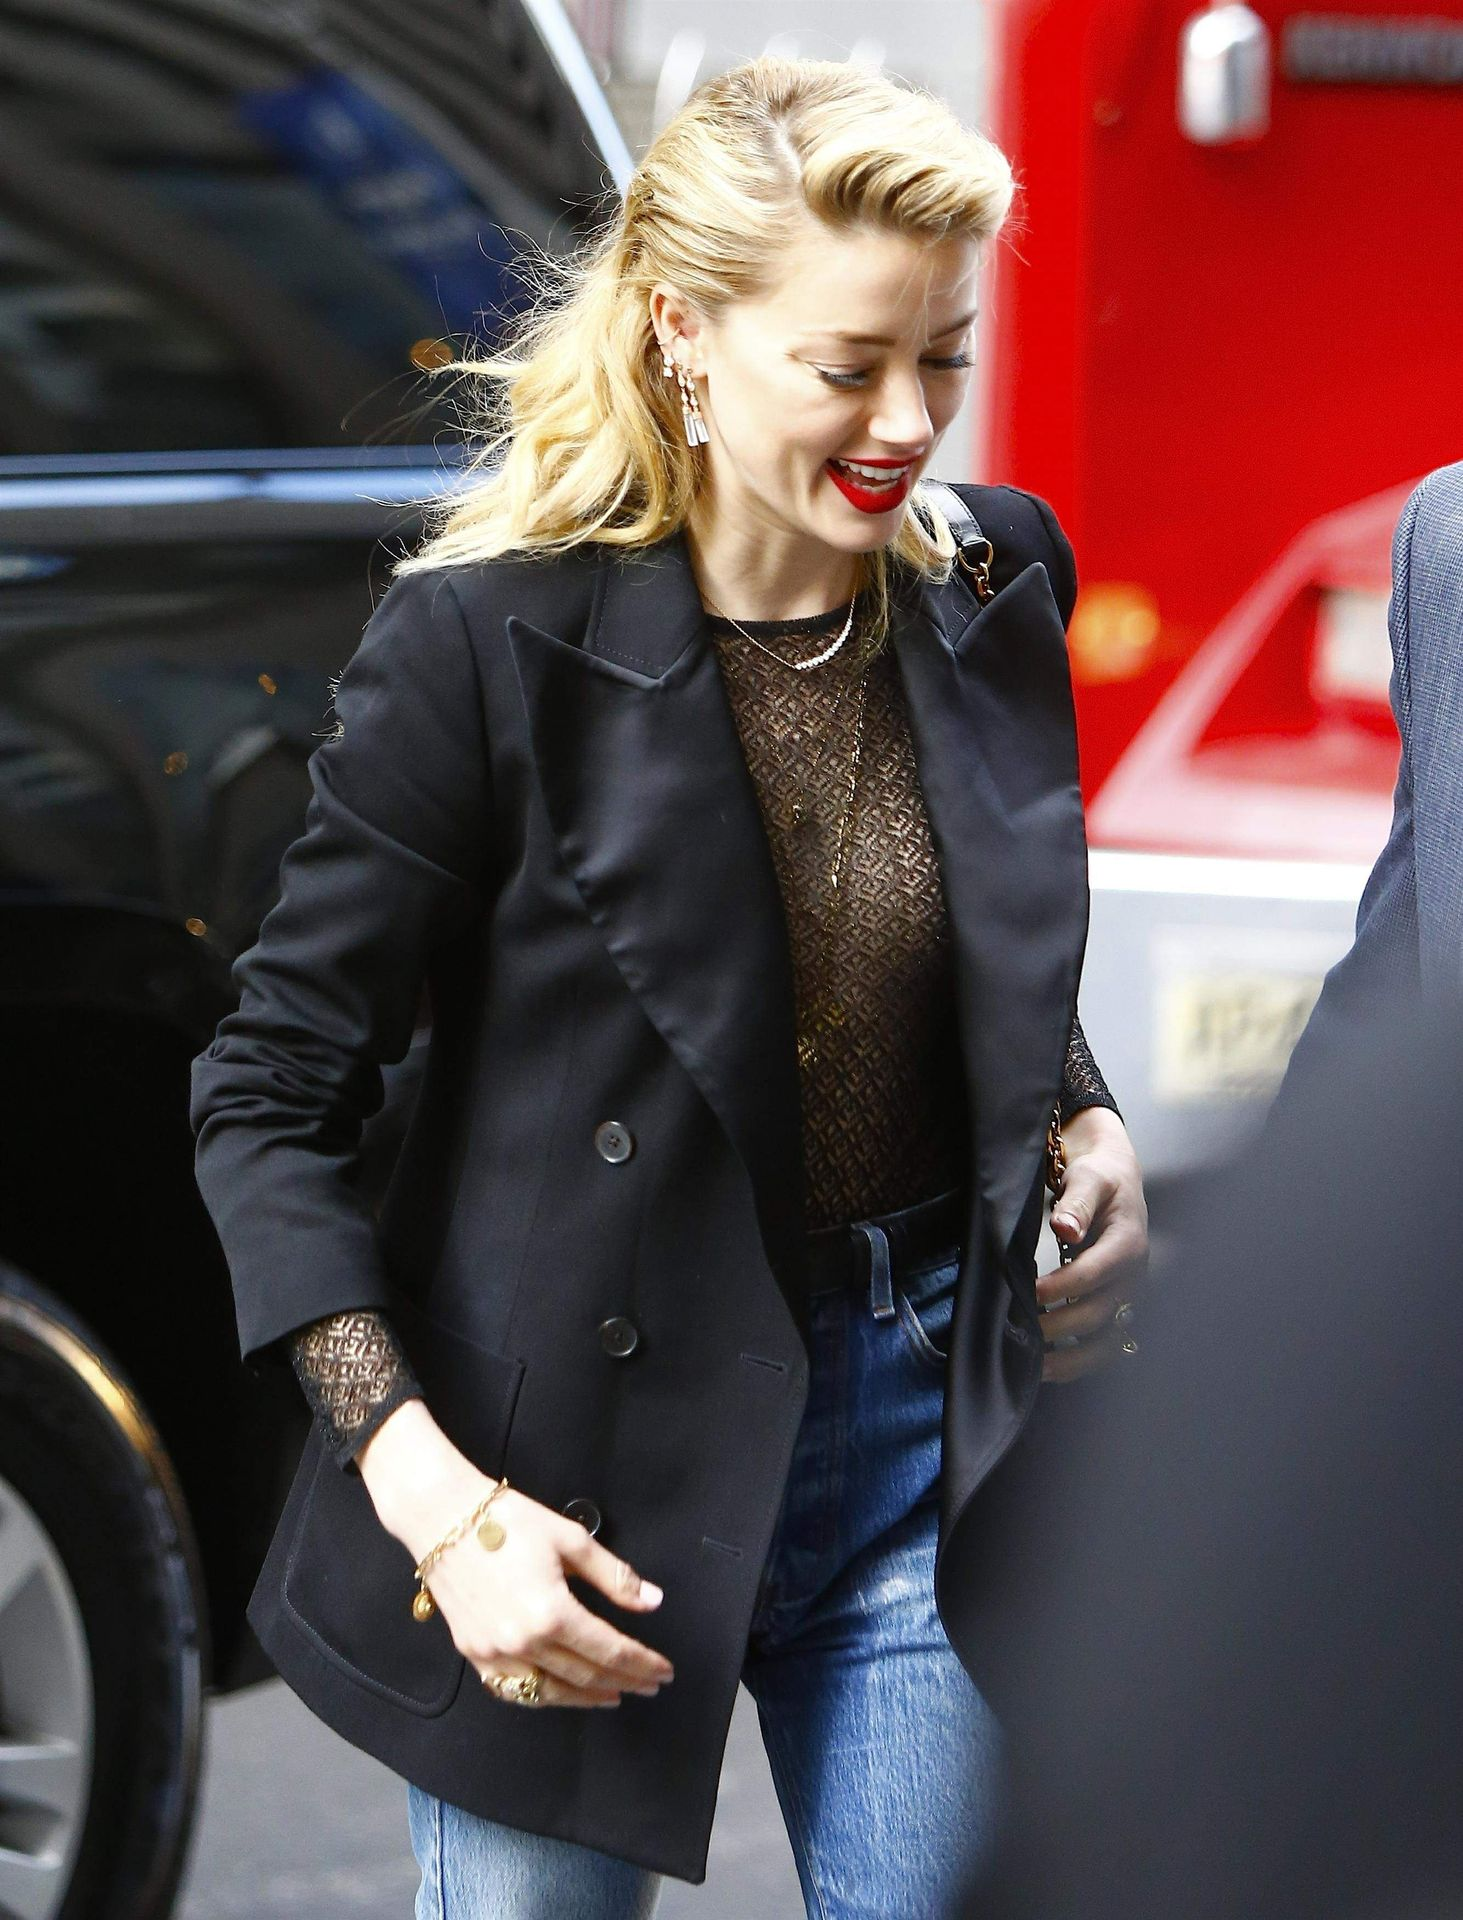 1106074852638_005_Amber-Heard-See-Through-TheFappeningBlog.com-6.jpg